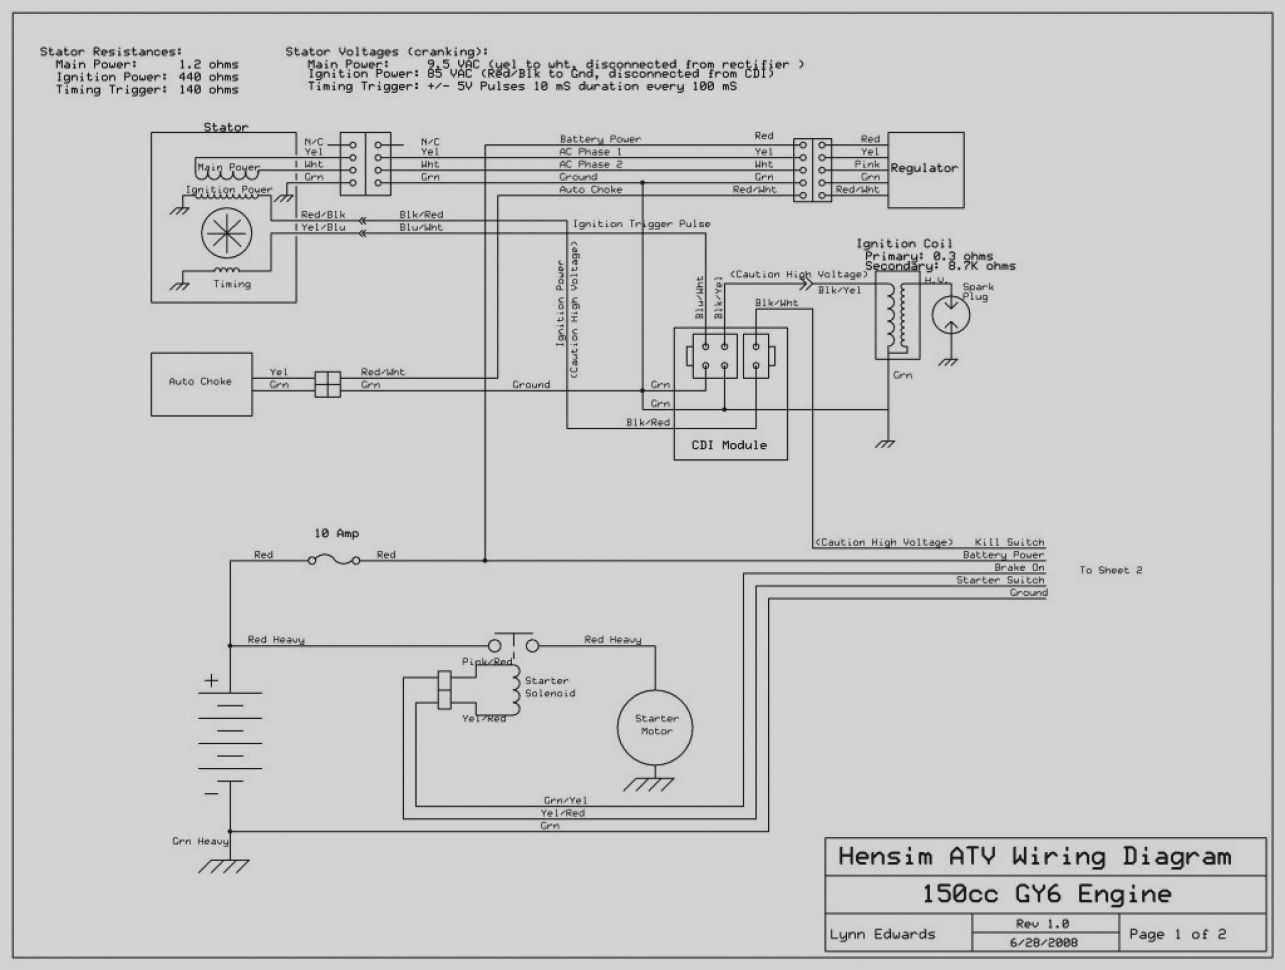 1993 Honda Prelude Wiring Diagram Electrical System Schematics In 2021 Electrical Diagram Electrical Wiring Diagram Boat Wiring